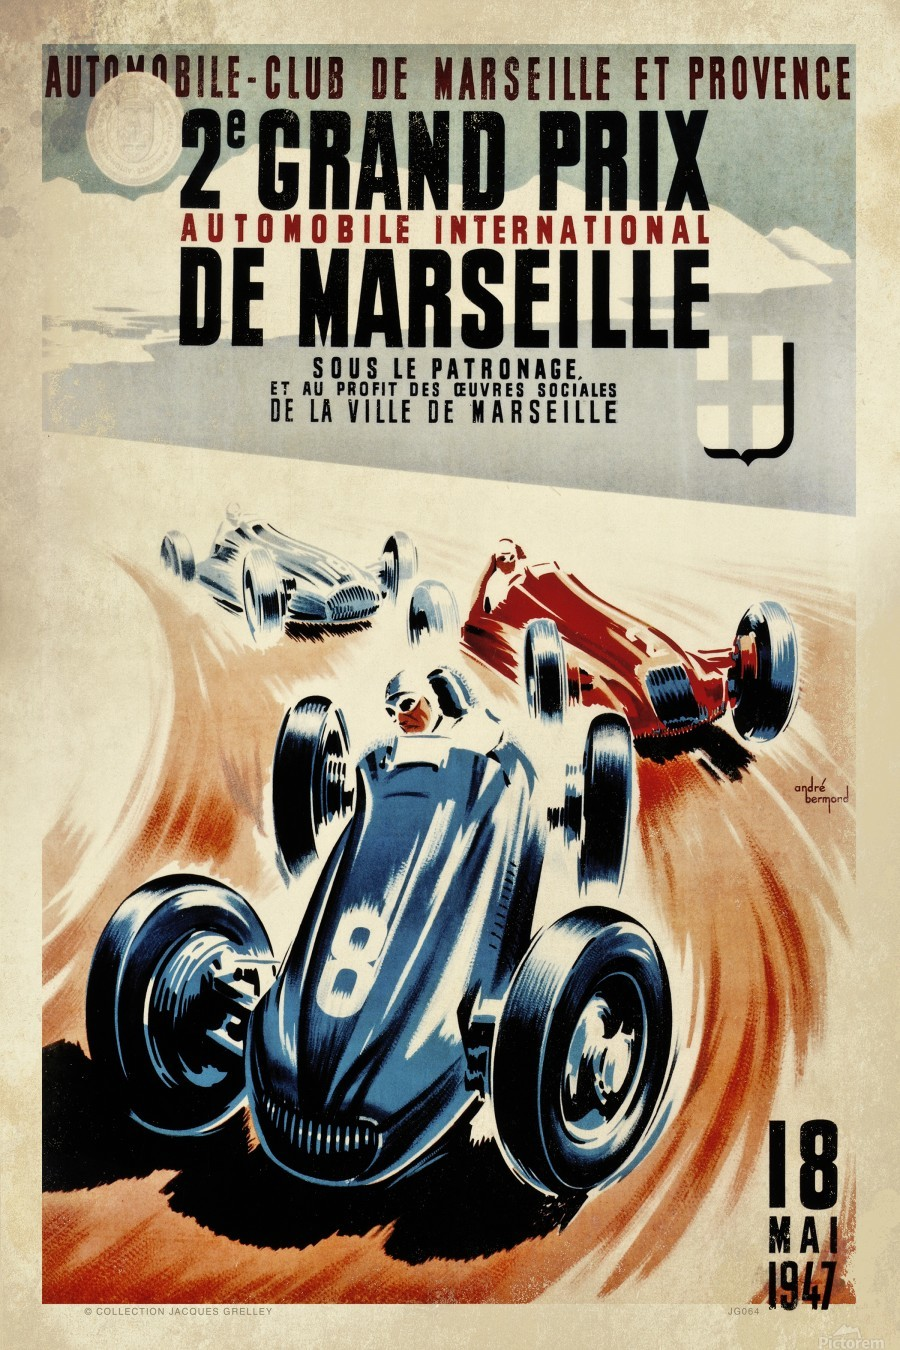 Marseille 2nd Grand Prix Automobile International 1947  Print